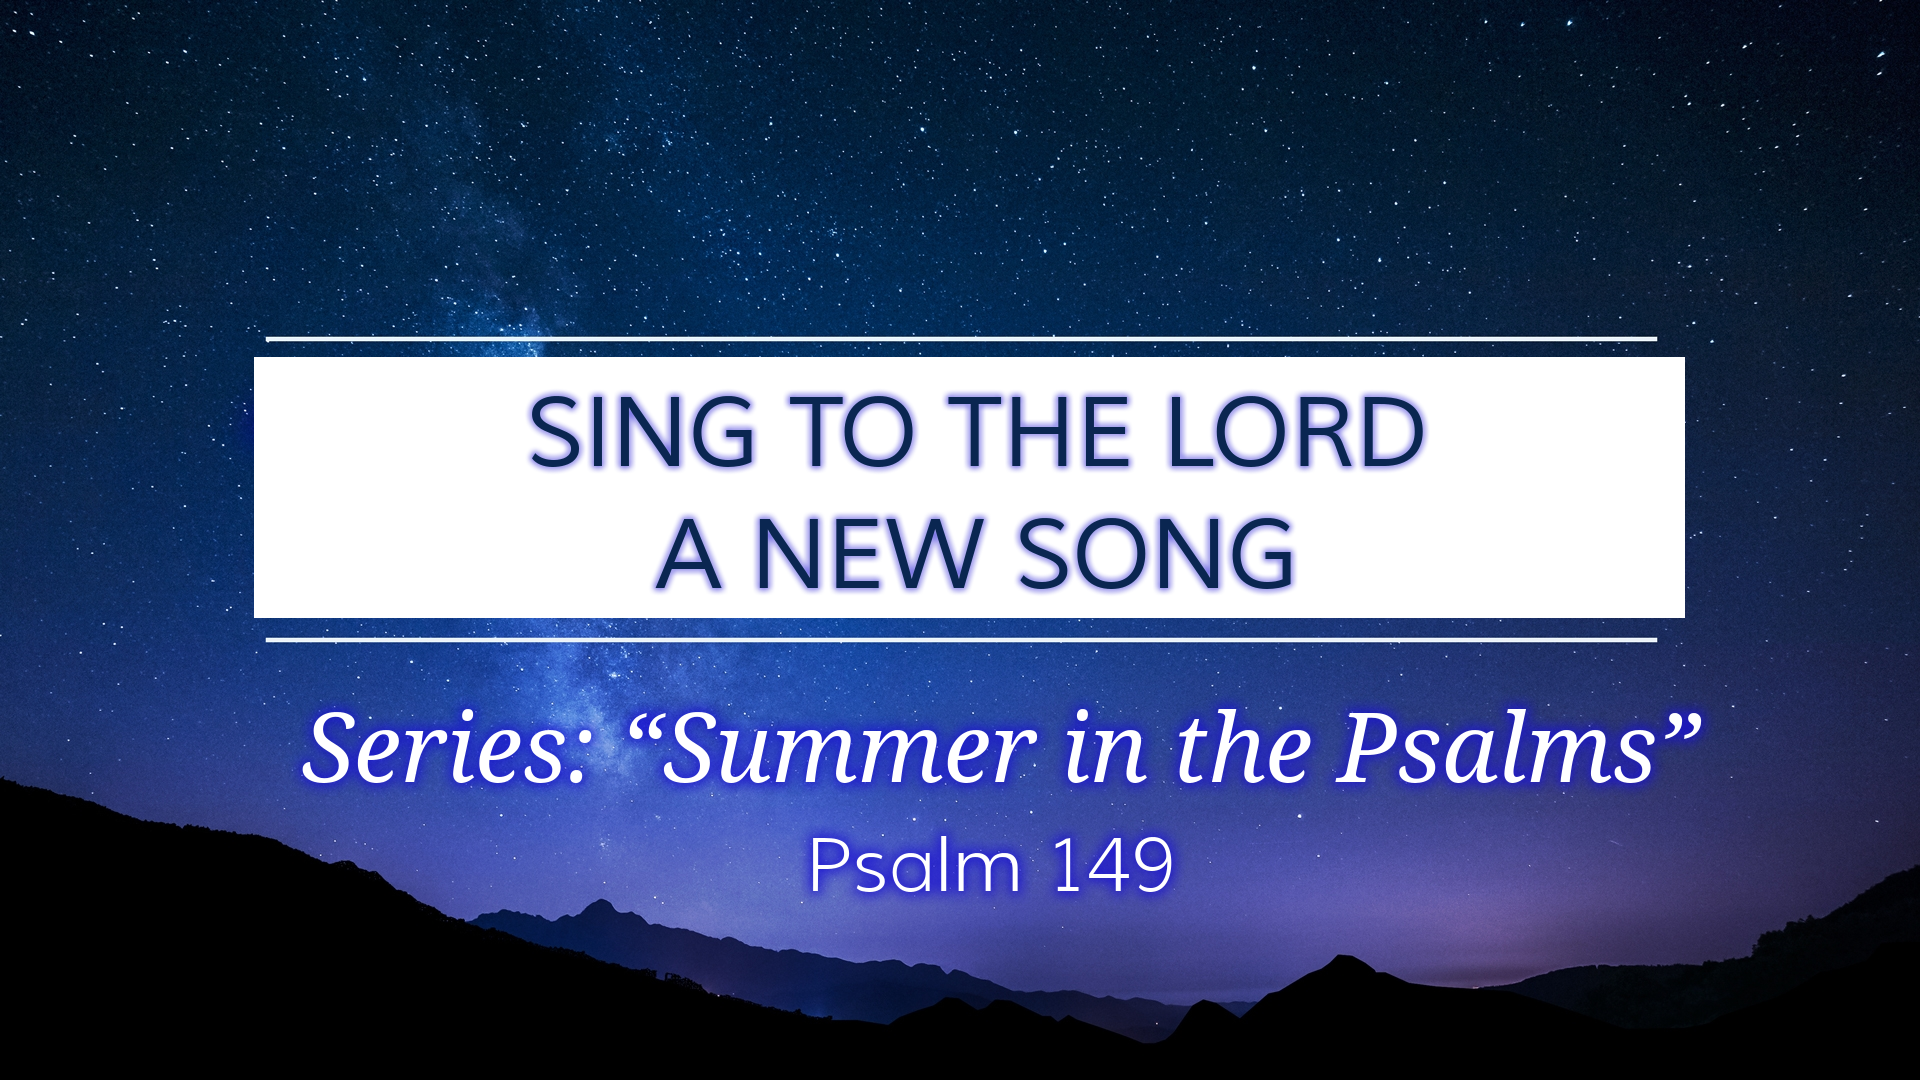 Image for the sermon Sing to the Lord a New Song